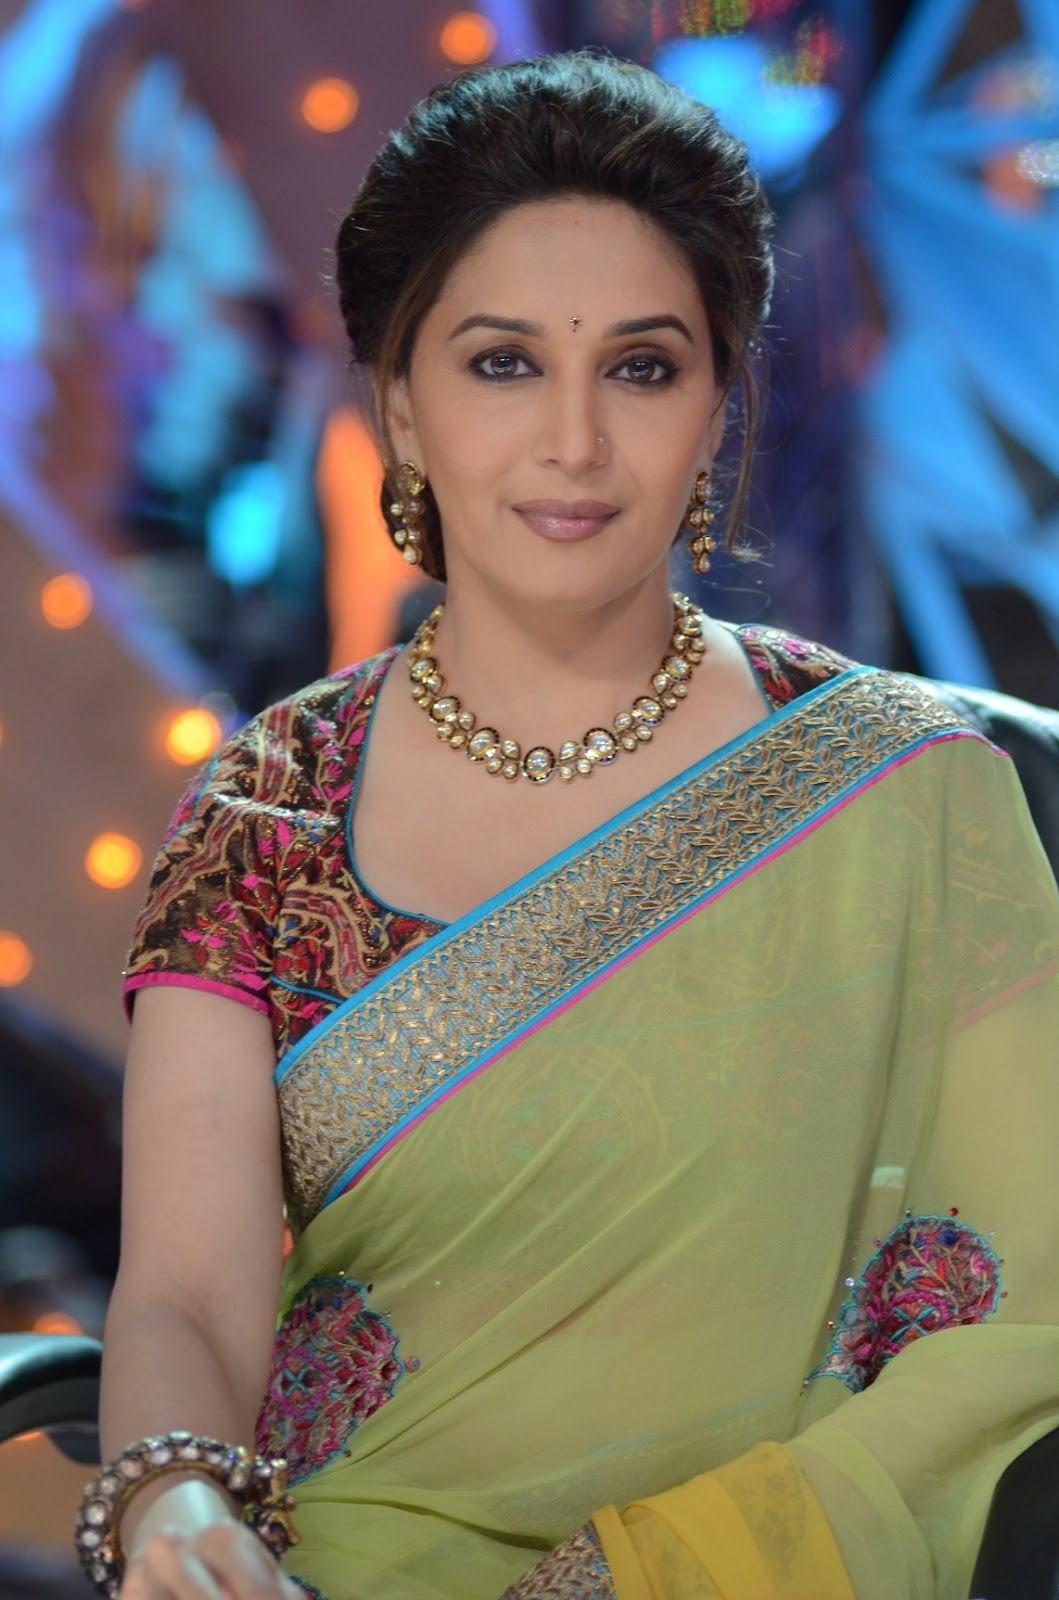 Madhuri Dixit Measurements, Height, Weight, Bra Size, Age, Wiki, Affairs